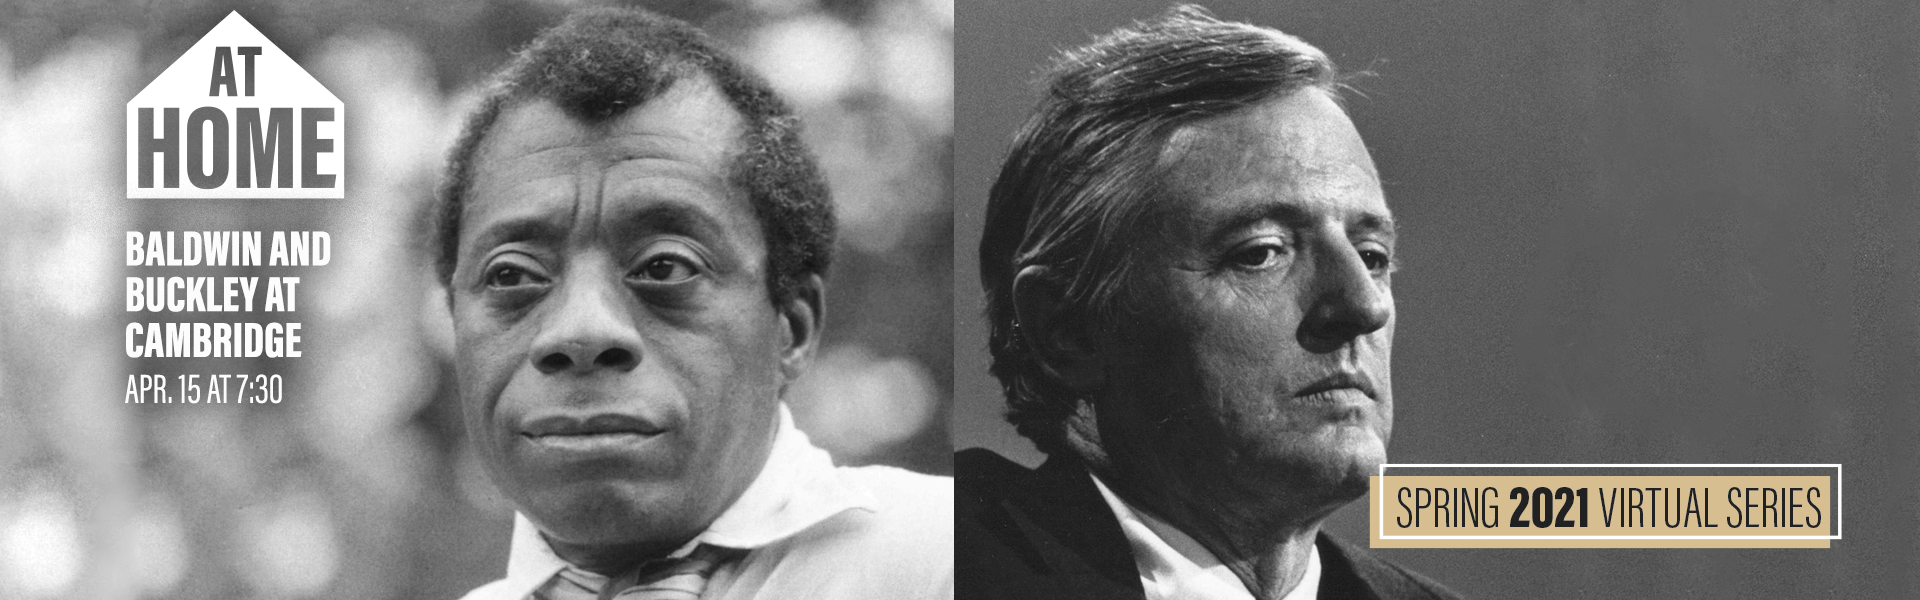 baldwin and buckley